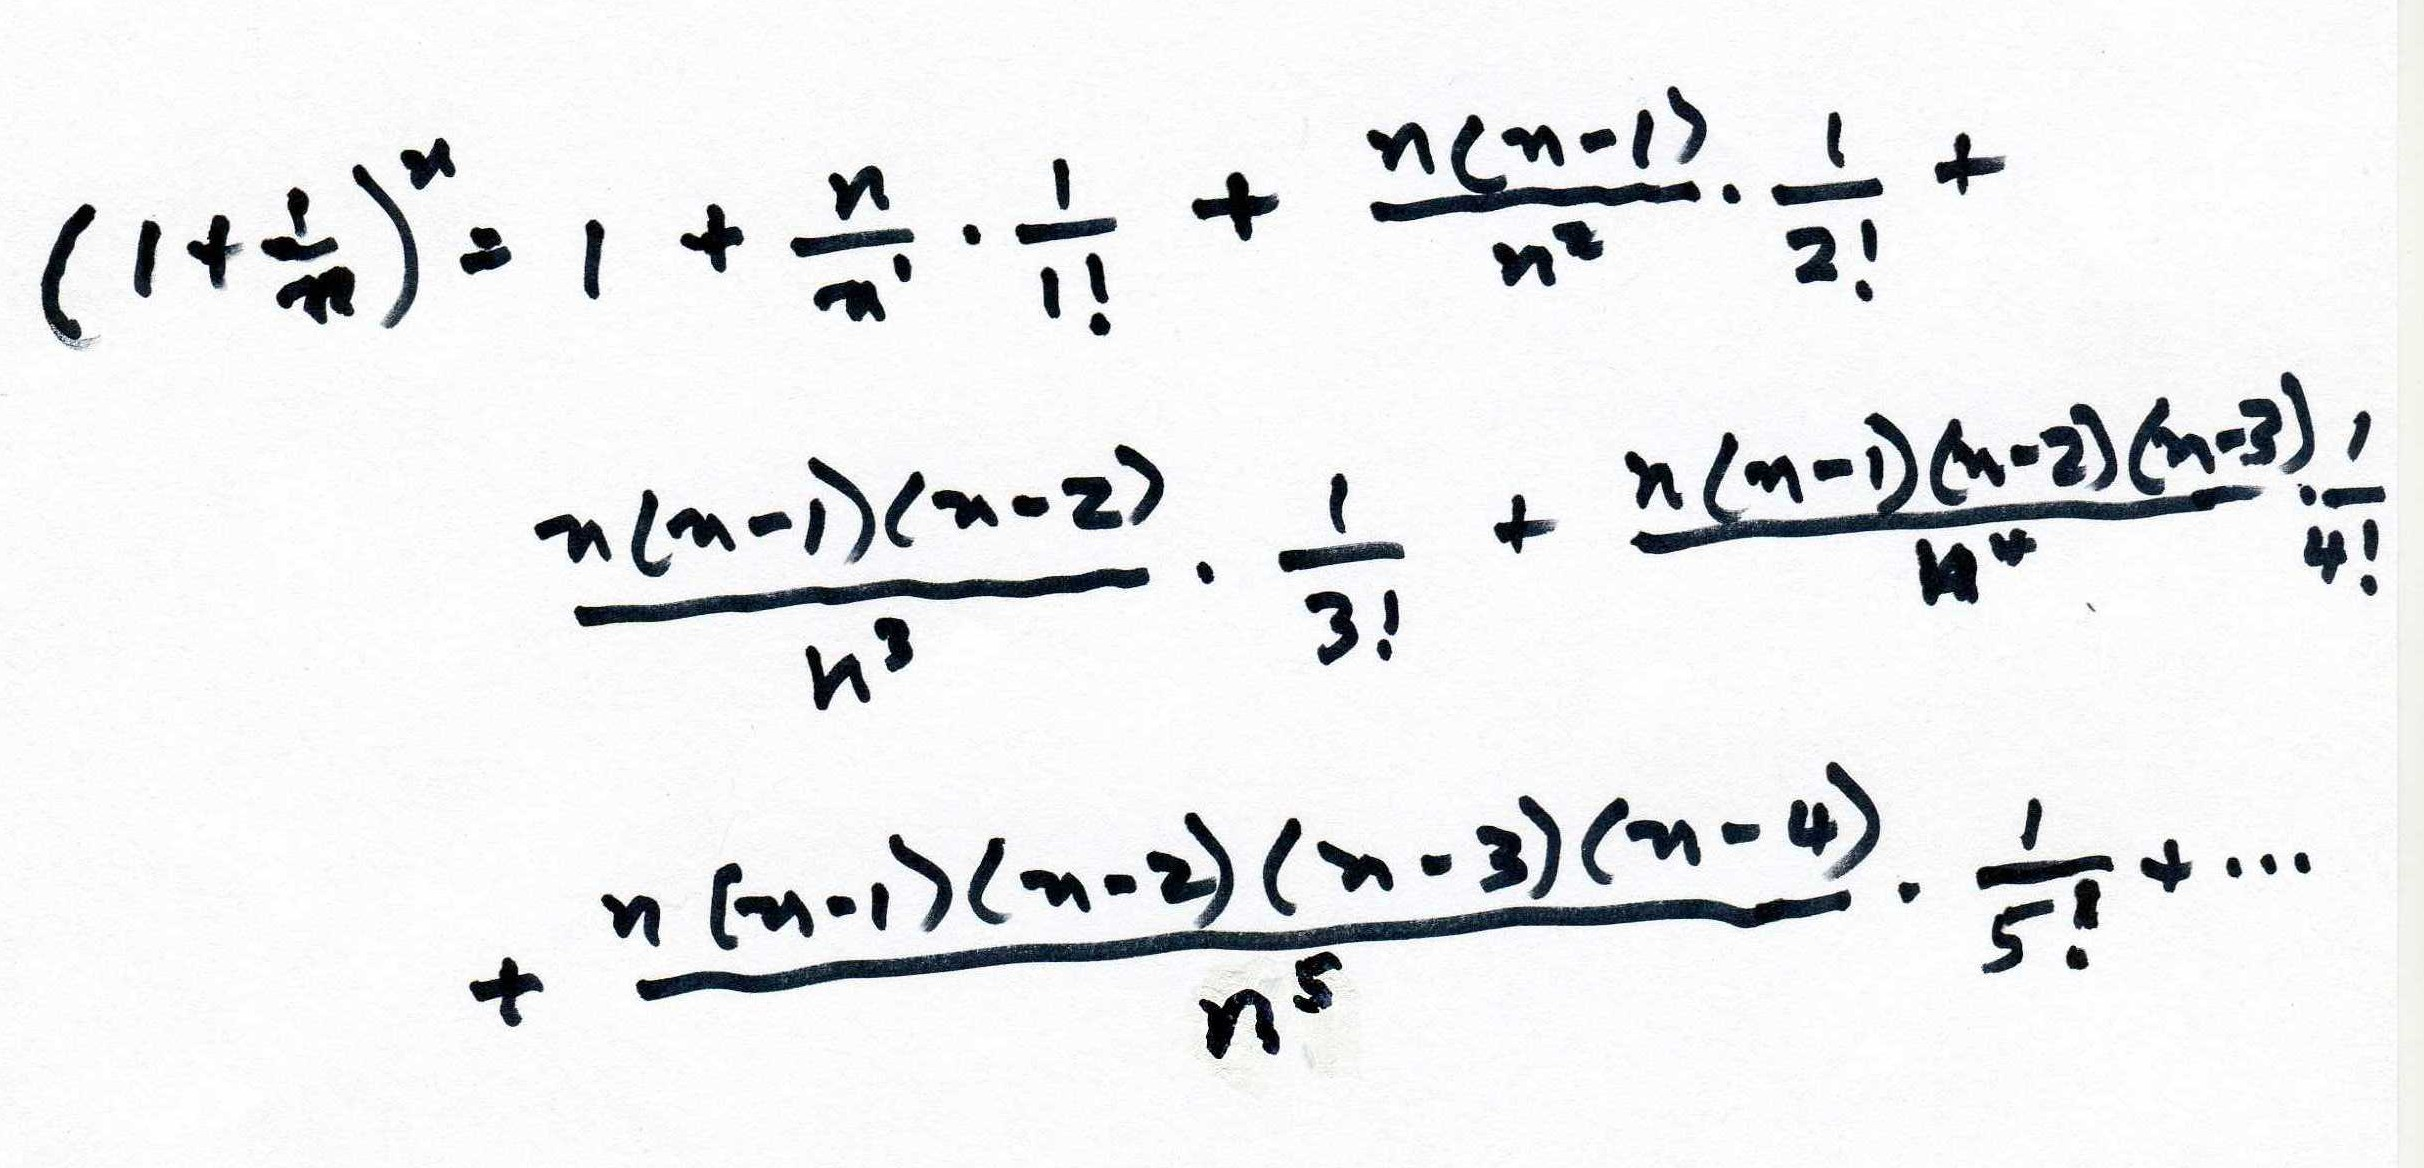 Nifty Gone Out Terms Binomial Now Look At Whathappens When We Let N All Fractions Will Go To Using Binomial Expansion To Get E E Infinity Review E To Infinity Equals dpreview E To Infinity